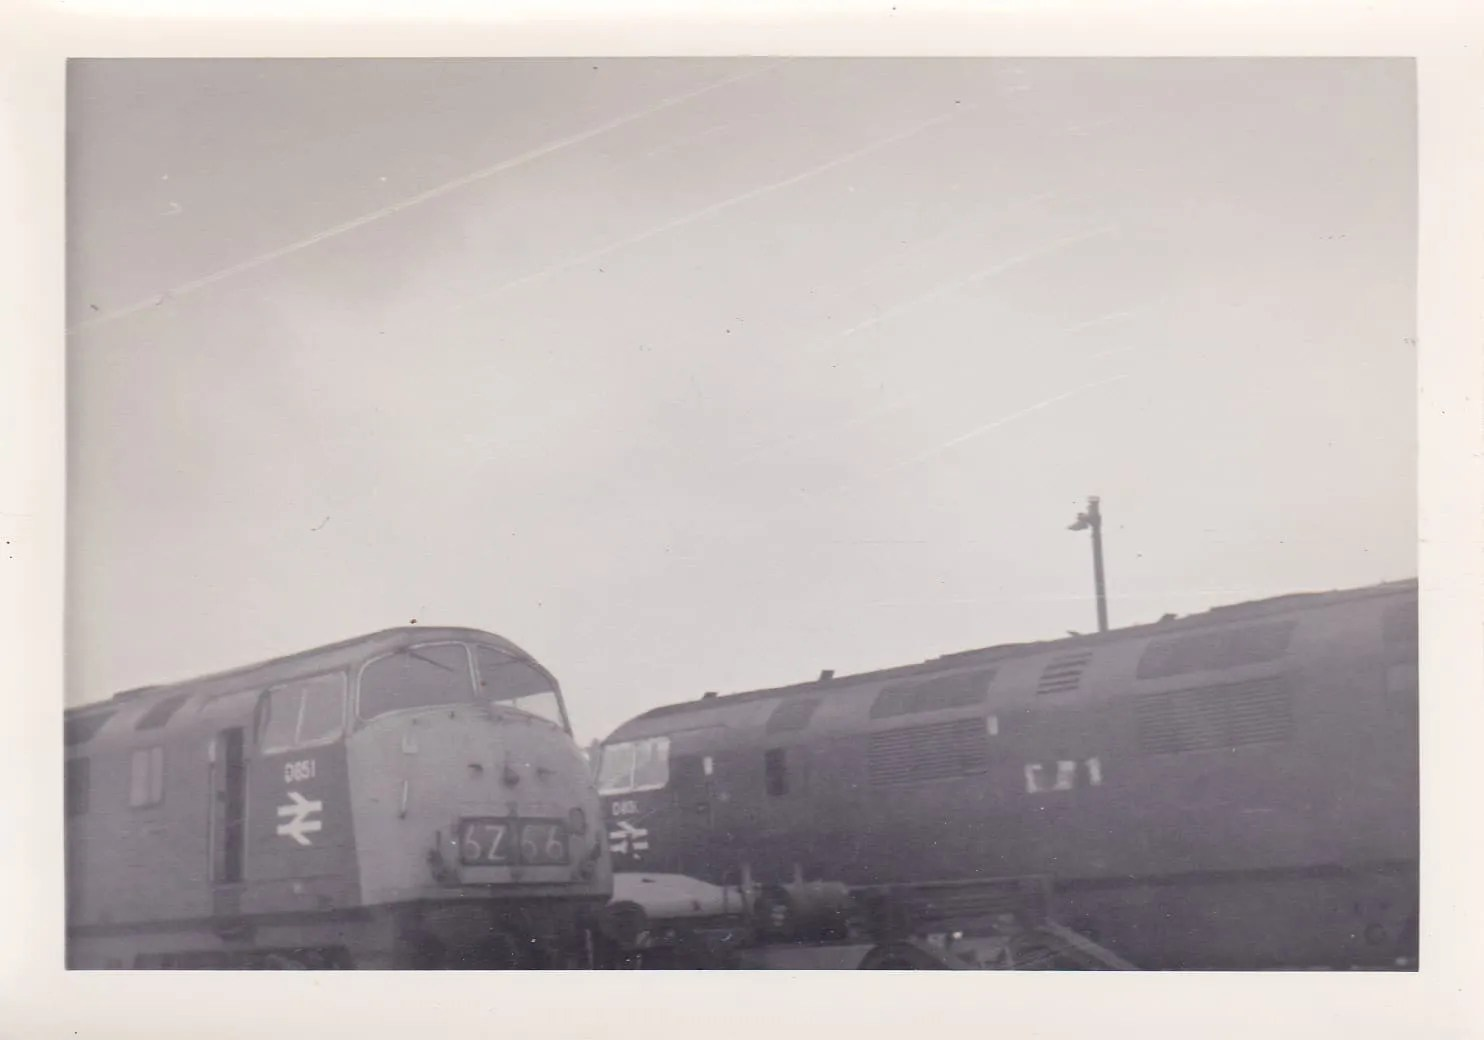 Warship Class 43s 851 Temeraire and 836 Powerful at Newton Abbot railway station in 1970s